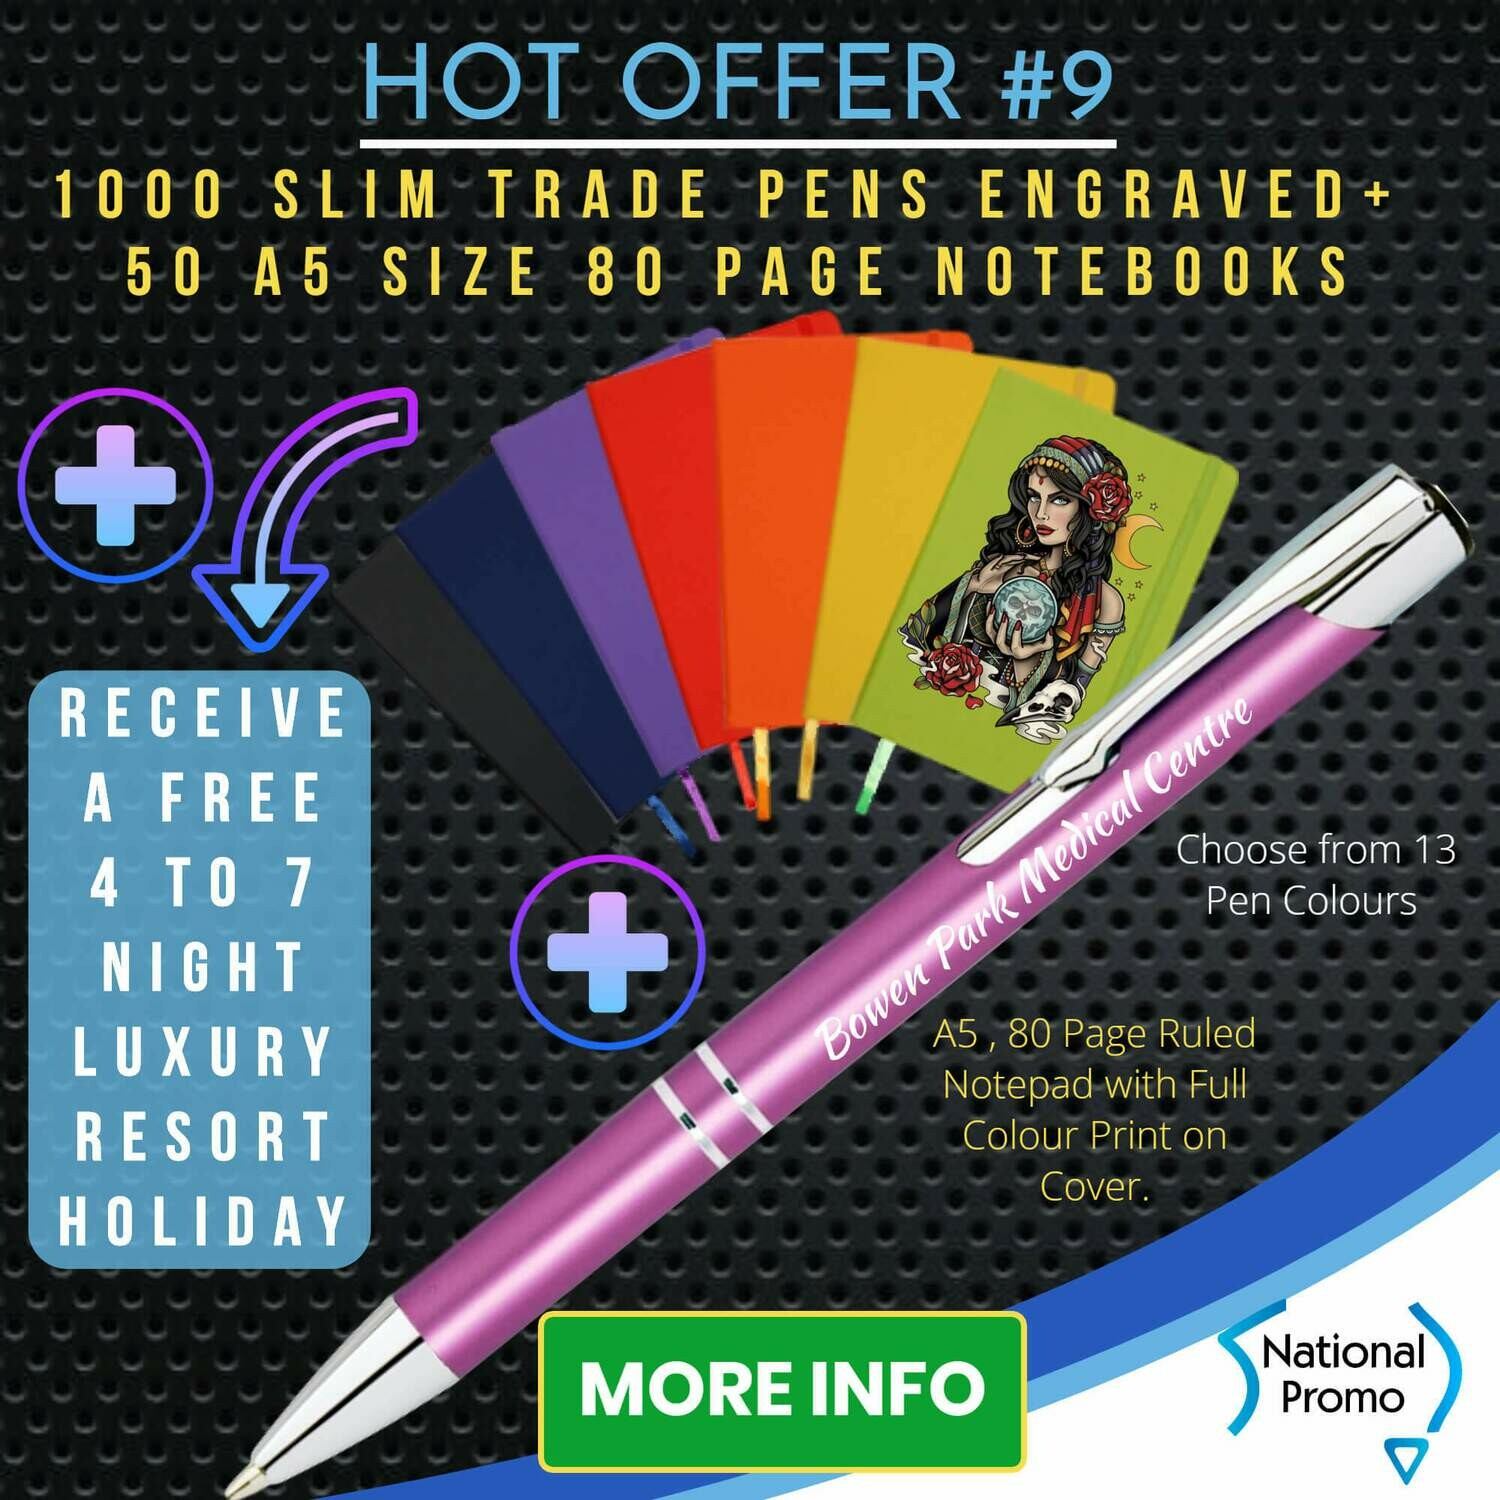 1000 SLIM TRADE PENS + 50 A5 80 PAGE NOTEBOOKS + get a FREE HOLIDAY